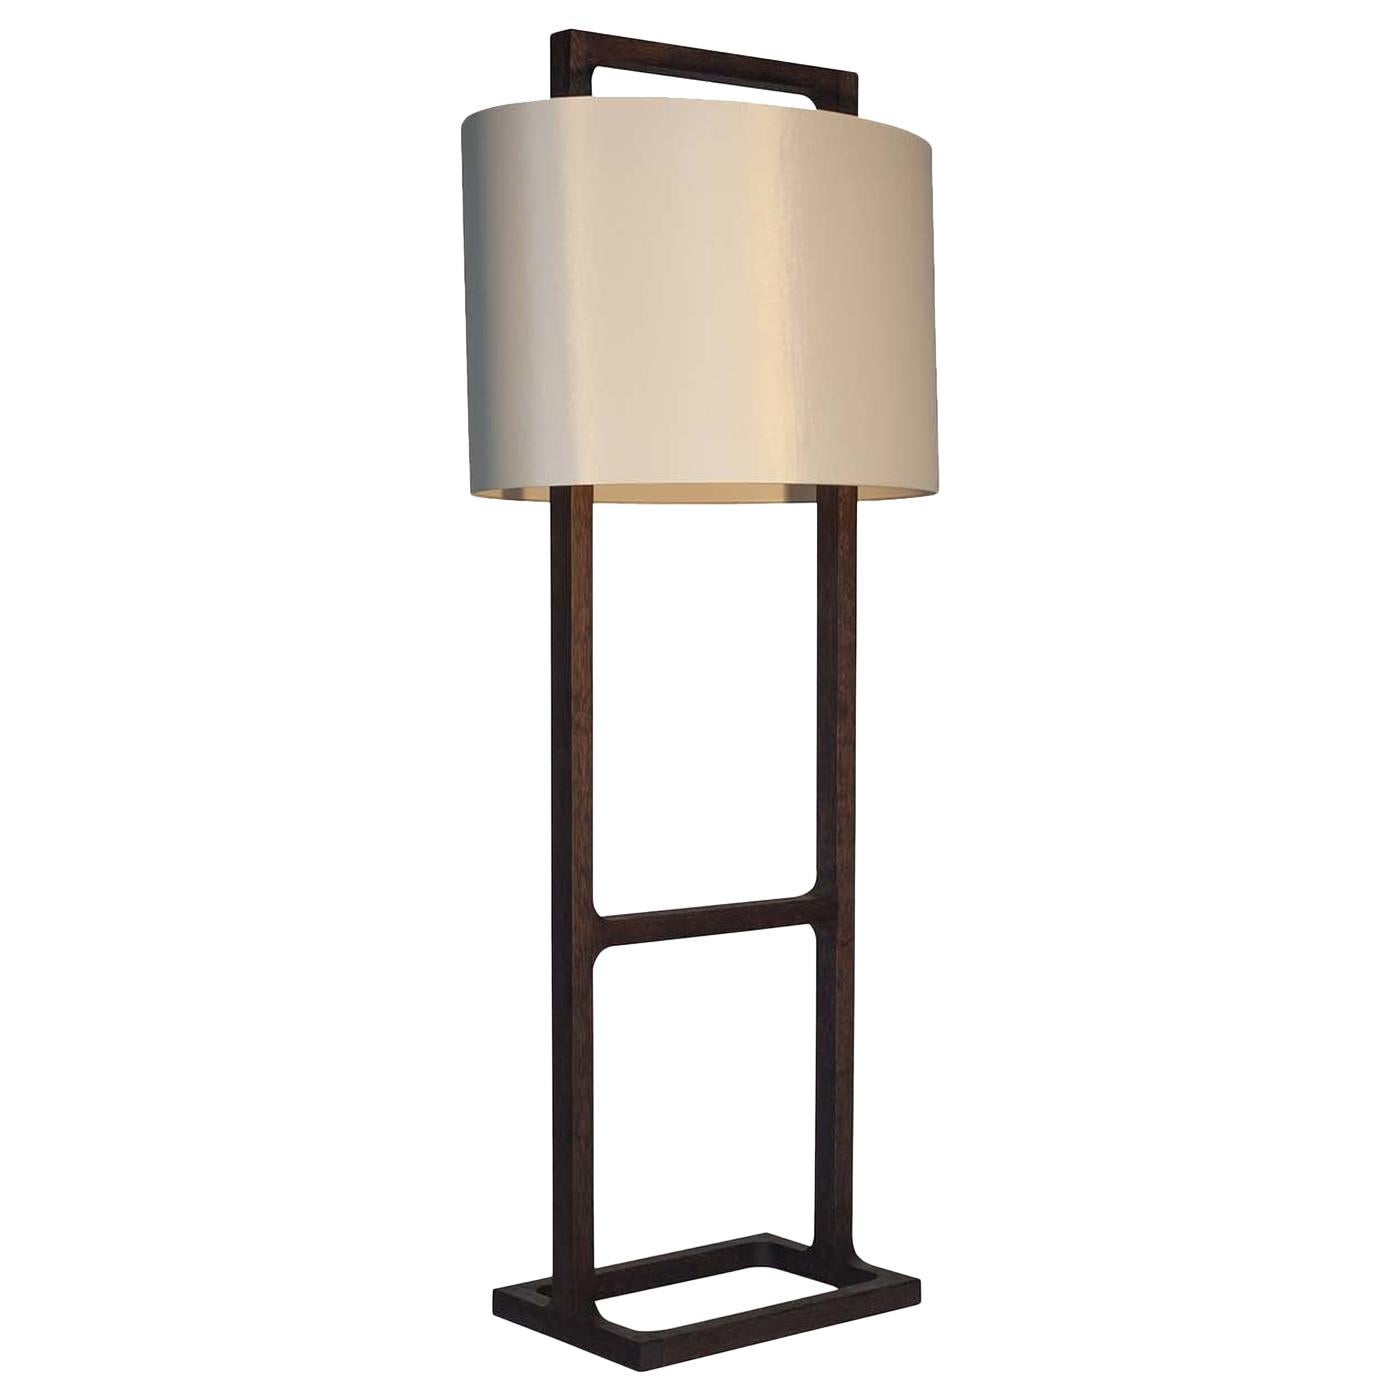 Tour Floor Lamp